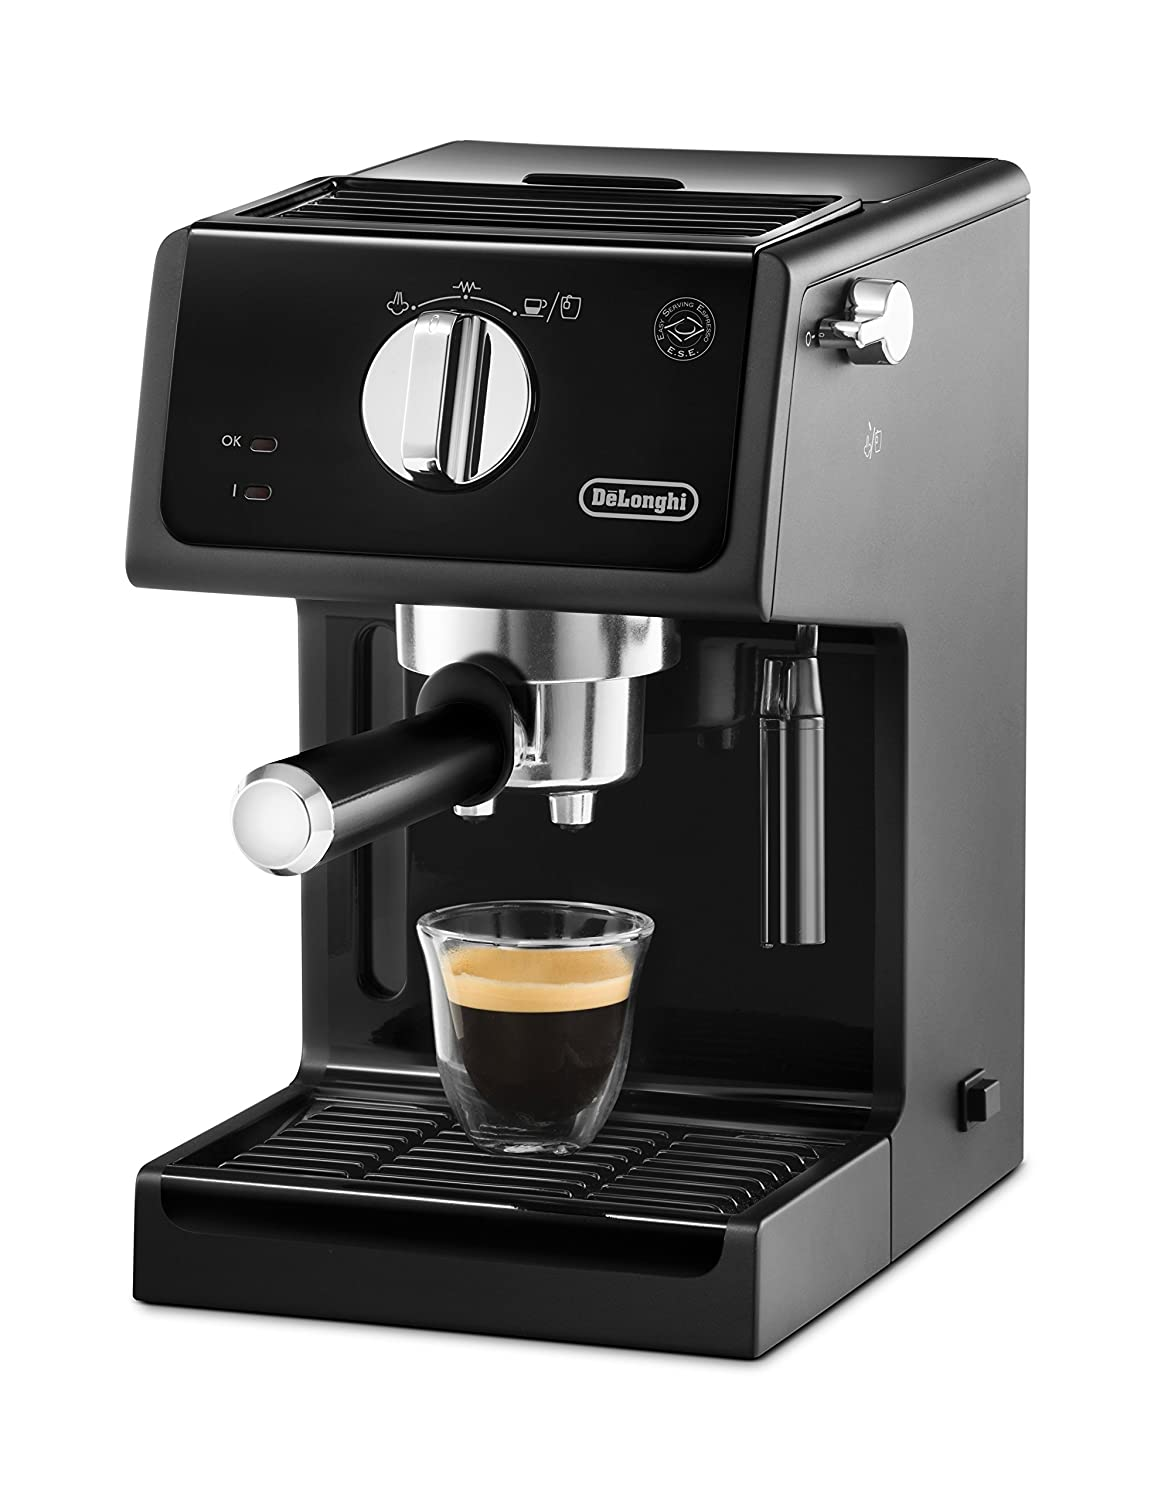 DeLonghi ECP31.21 Italian Traditional Espresso Coffee Maker, Black (Certified Refurbished)